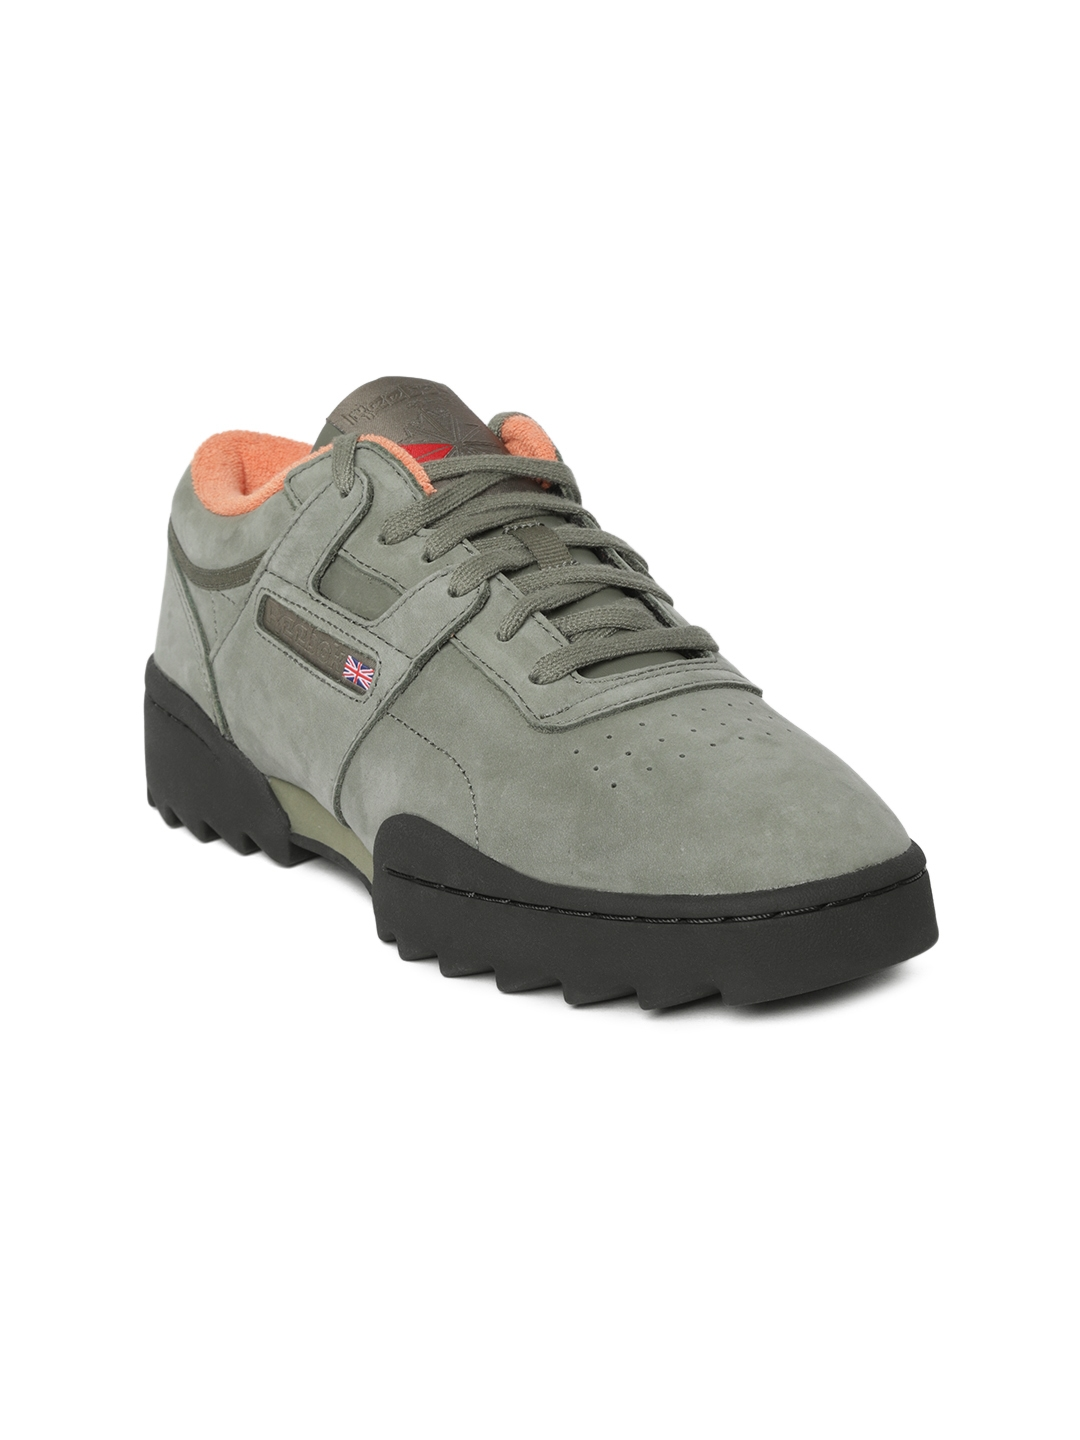 5fabccd739363 Reebok Classic Women Olive Green Workout Ripple OG Patent Leather Sneakers